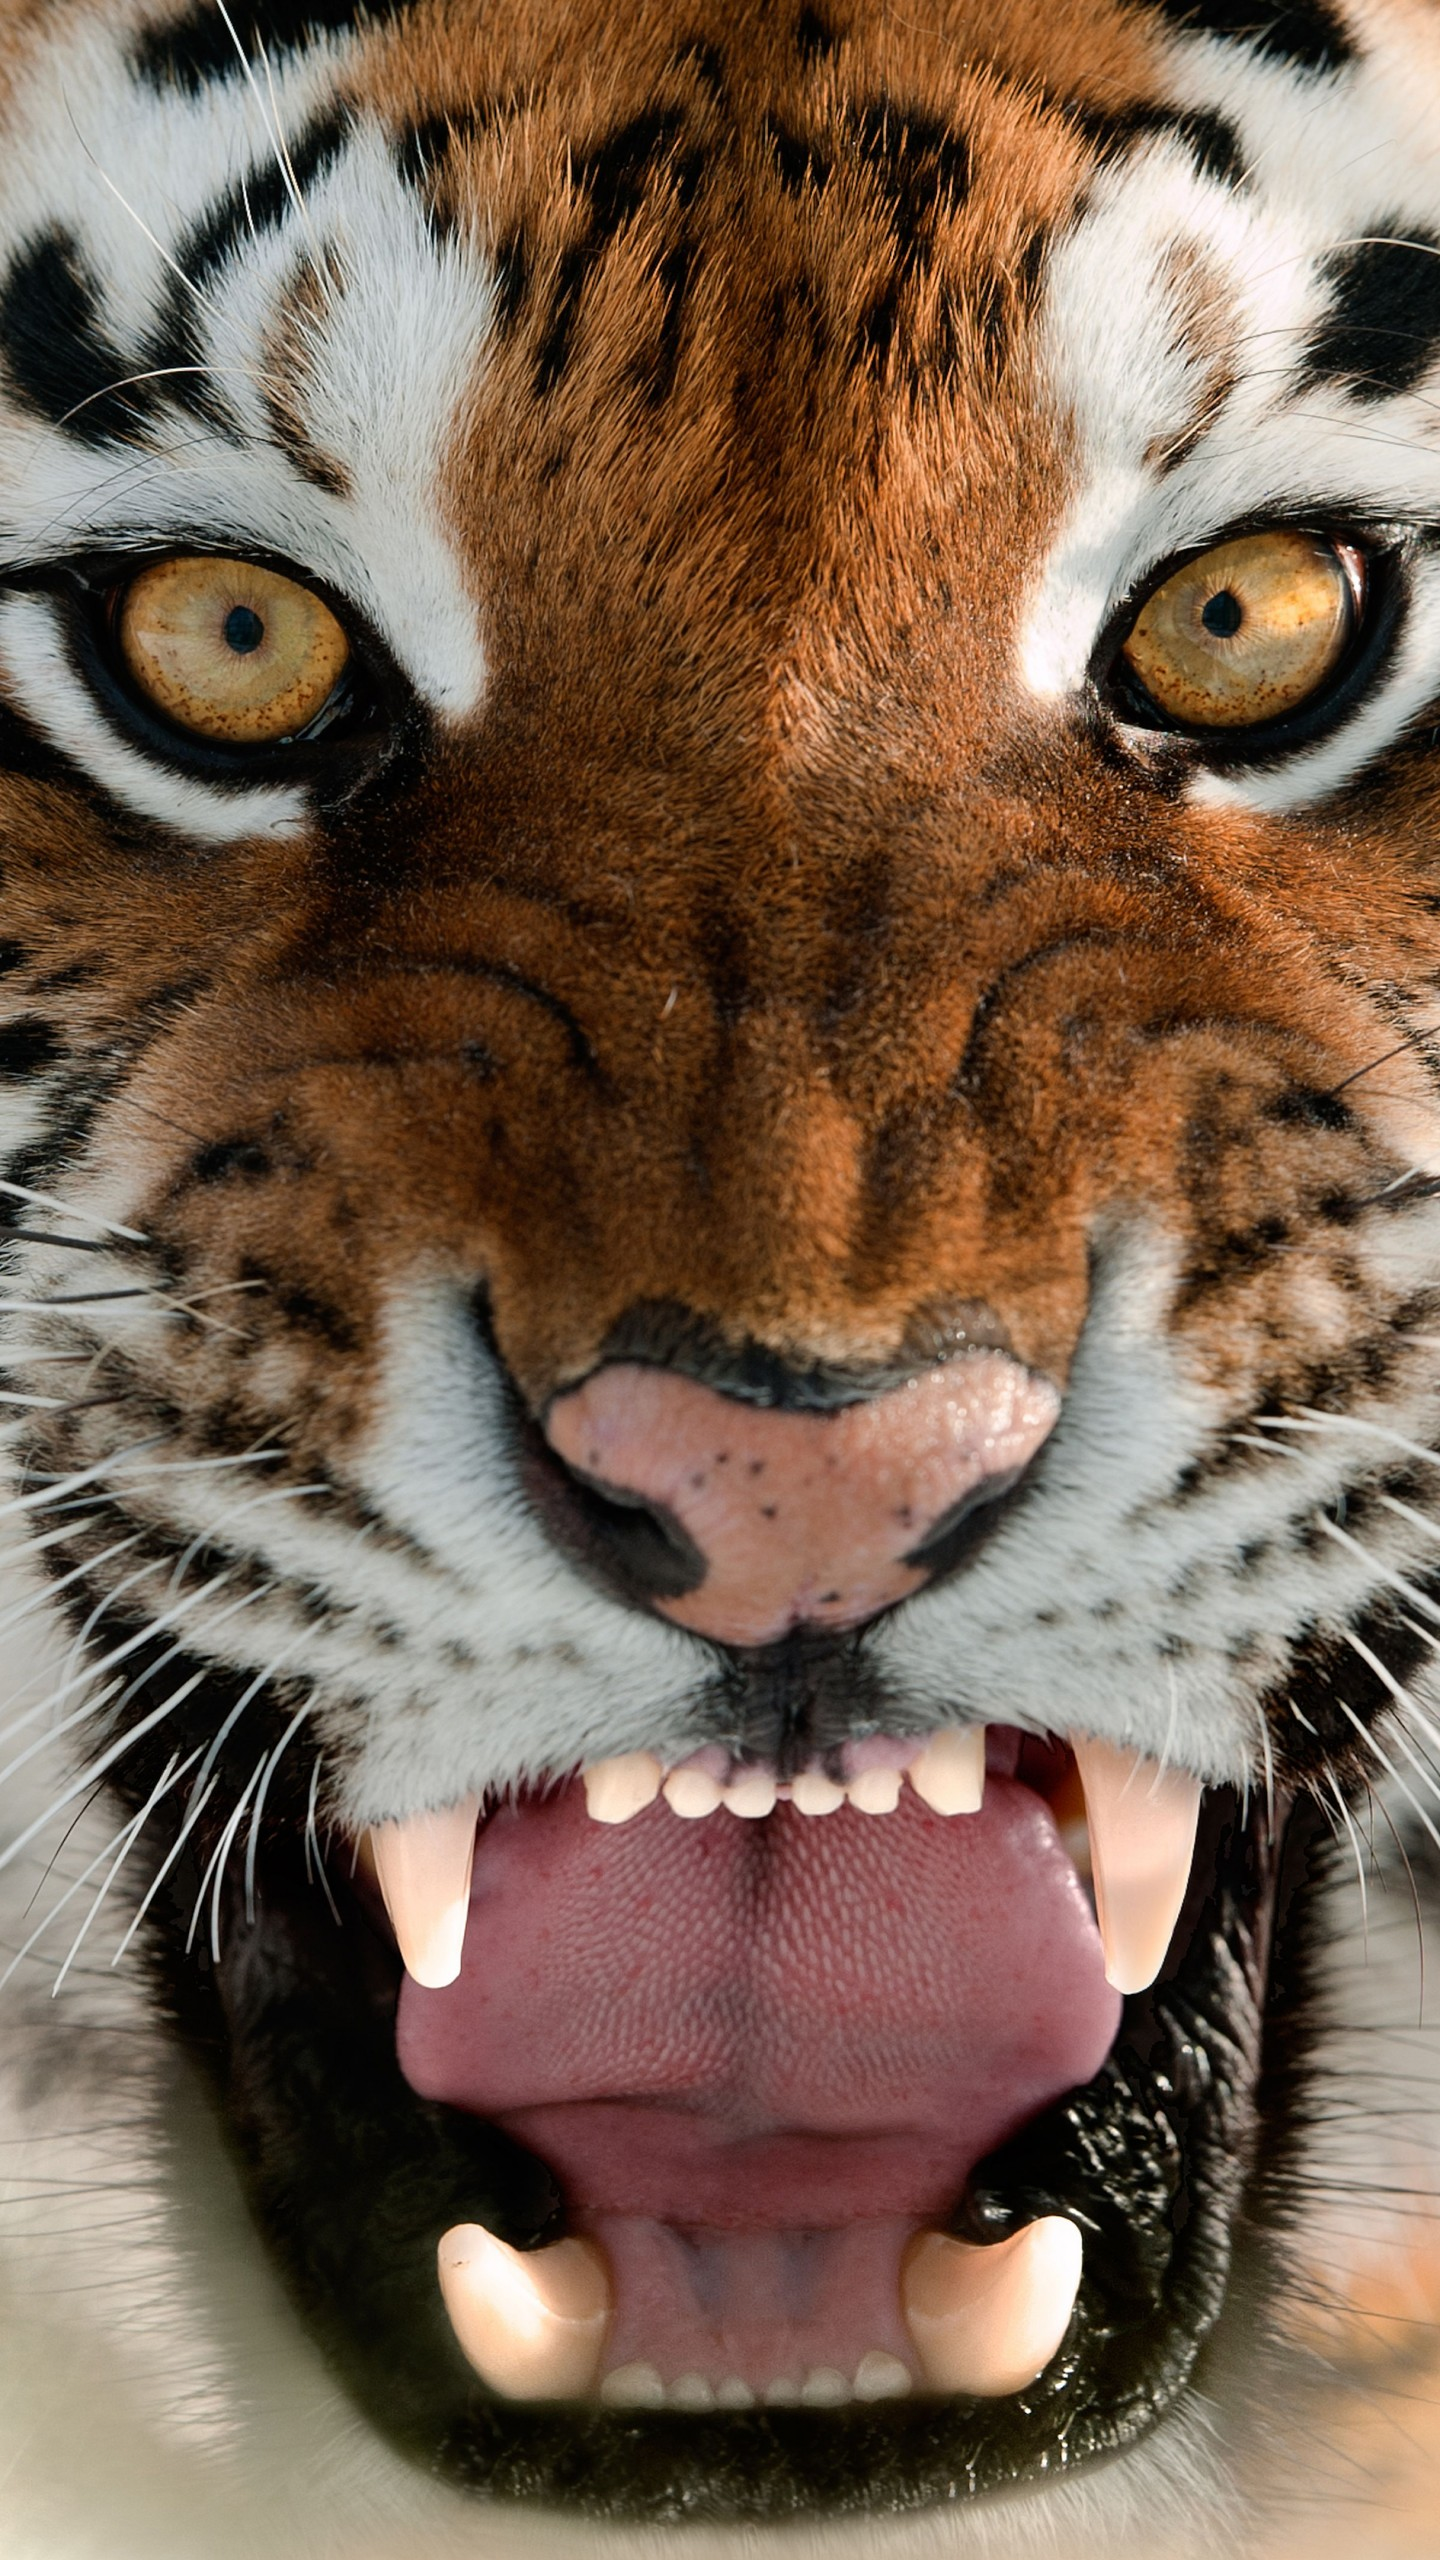 Iphone 6 Wallpaper Hd Download Wallpaper Tiger Muzzle Grin Amur Tiger Portrait